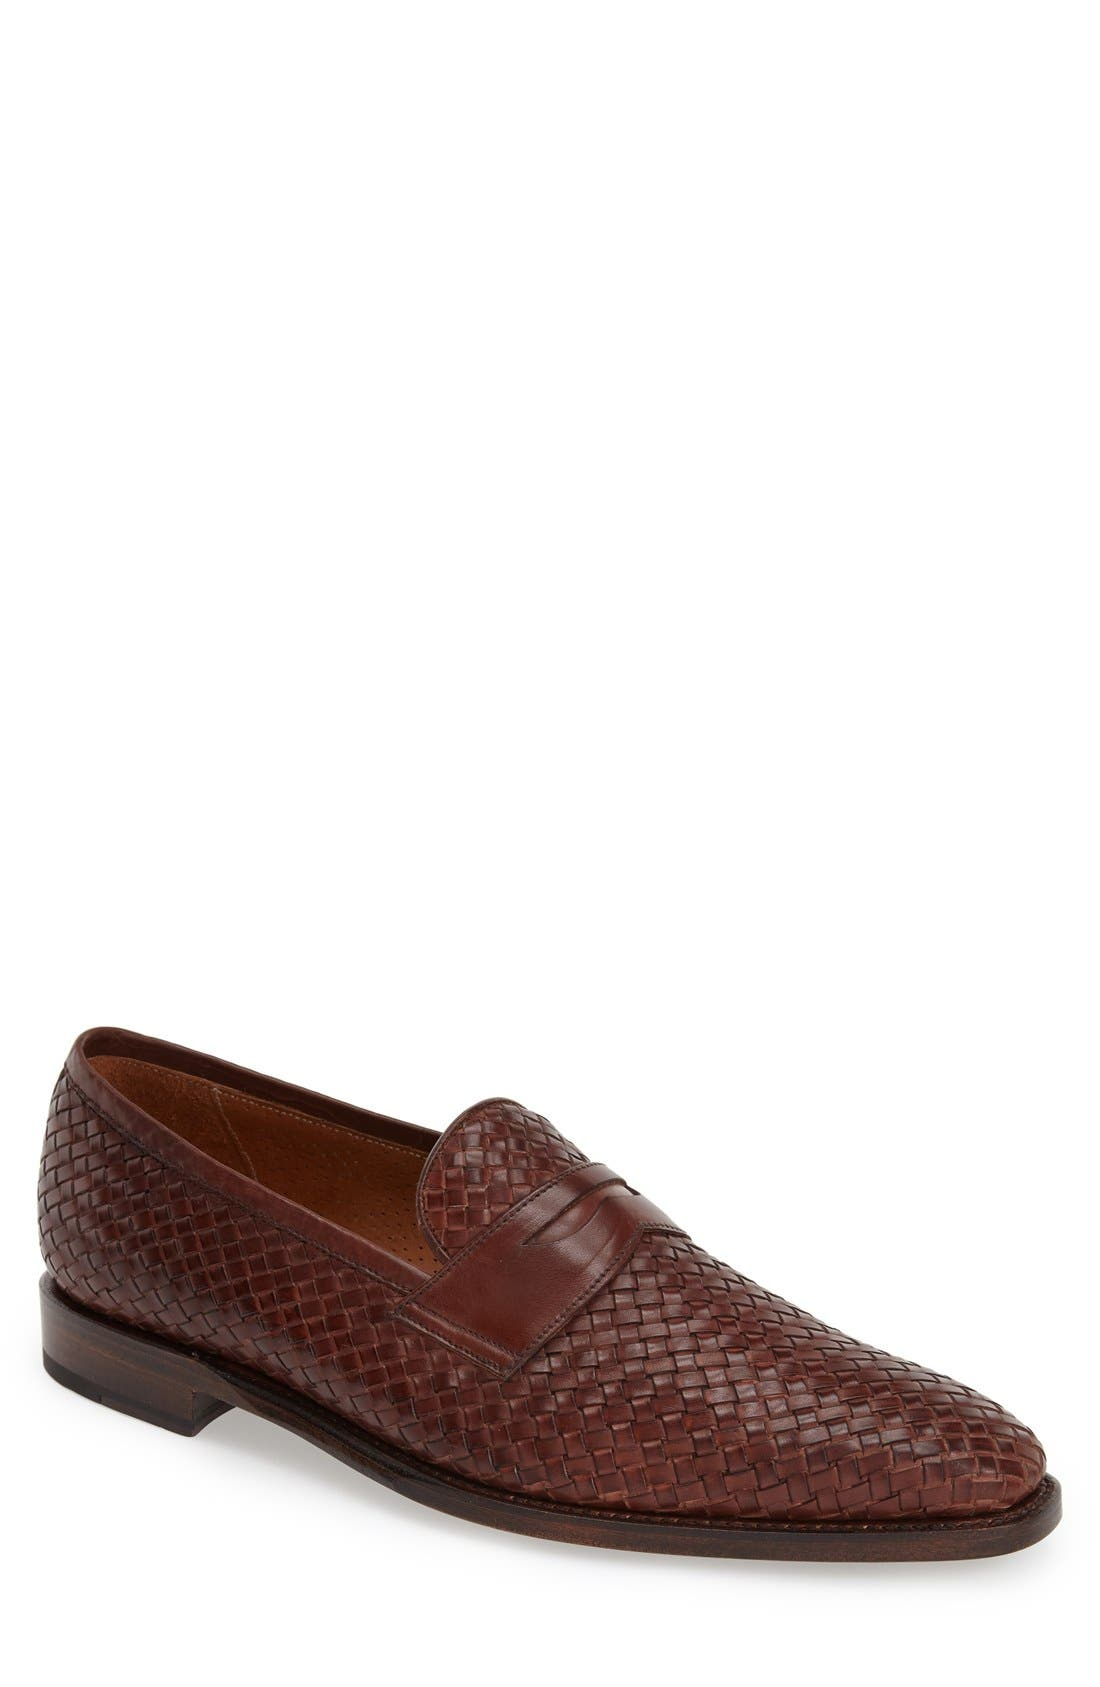 Boots 'Saratoga' Penny Loafer,                         Main,                         color, Brown